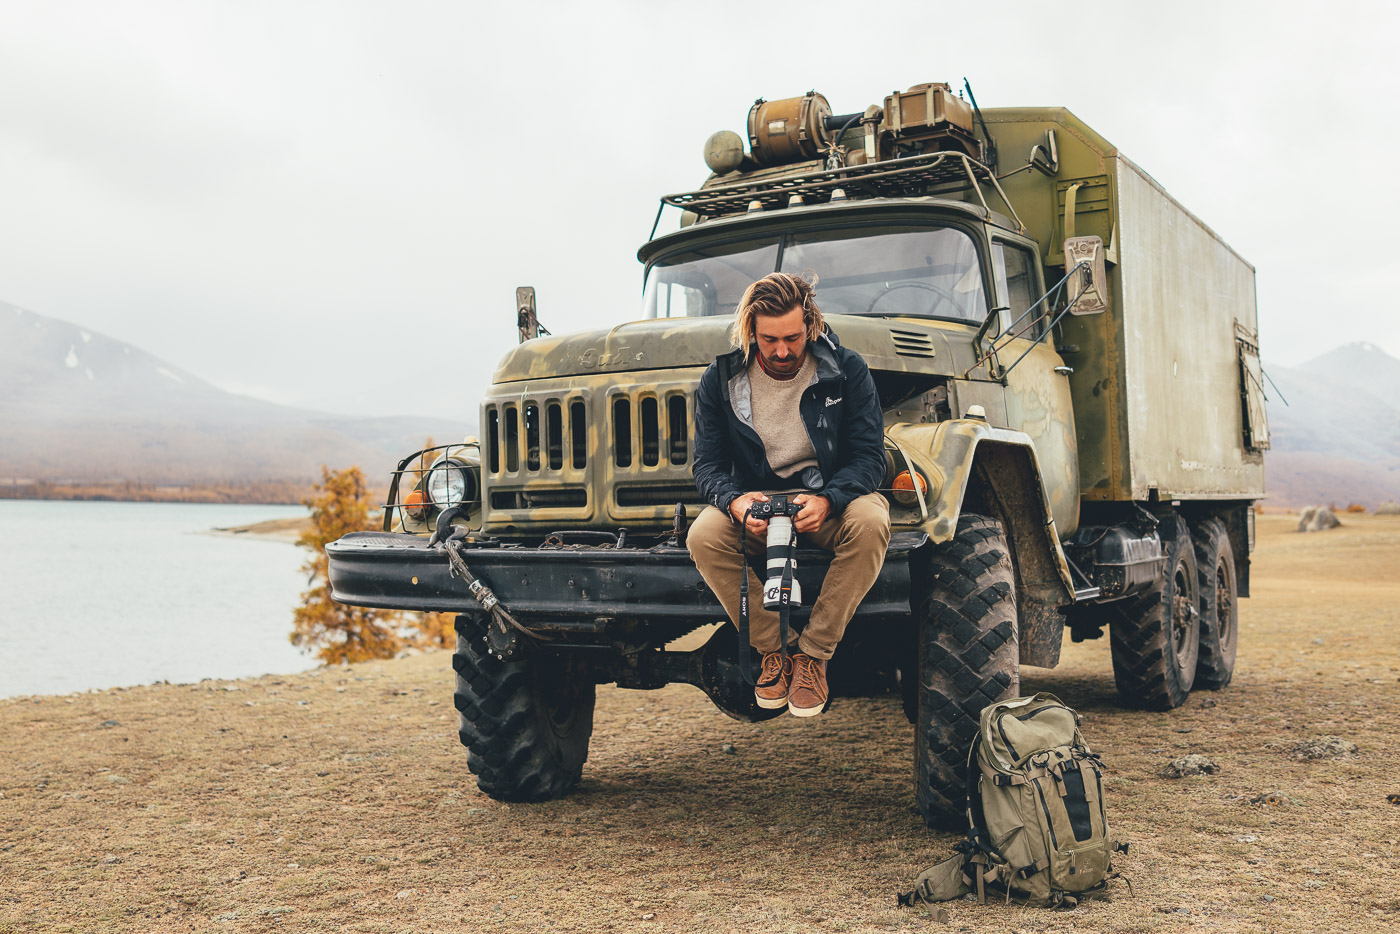 Stefan Haworth sitting on army truck and reviewing images in Mongolia with Sony a7rII and FE 70-200mm f/4 G OSS